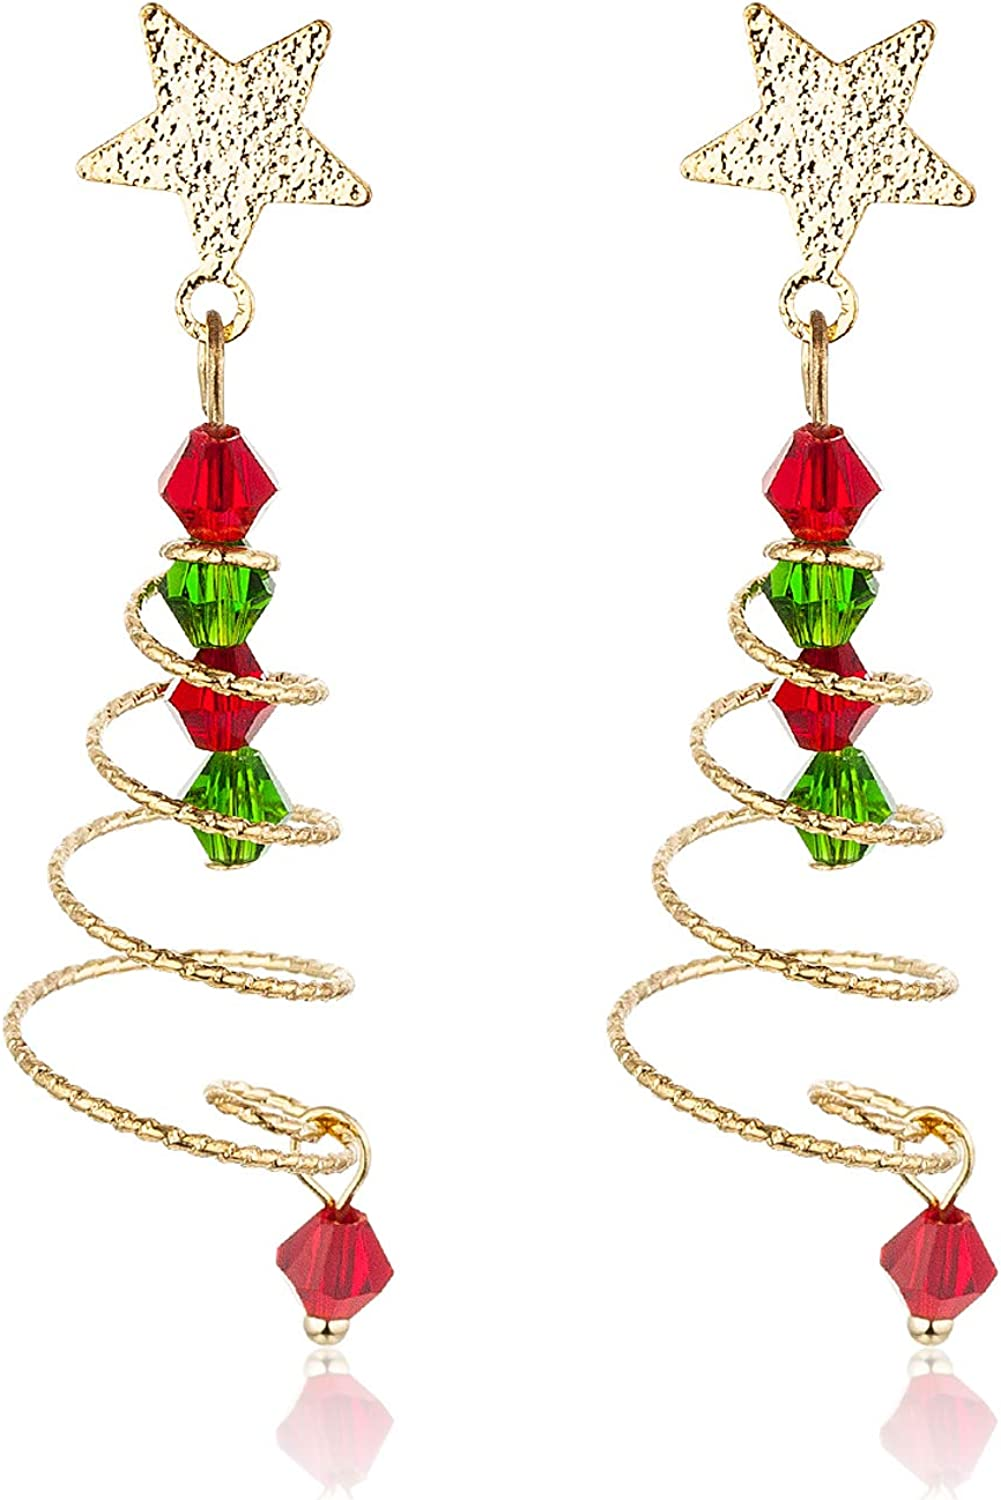 Clip On Christmas Tree Earrings for Women and Girls Red Green Beads Charm Dainty Christmas Earrings